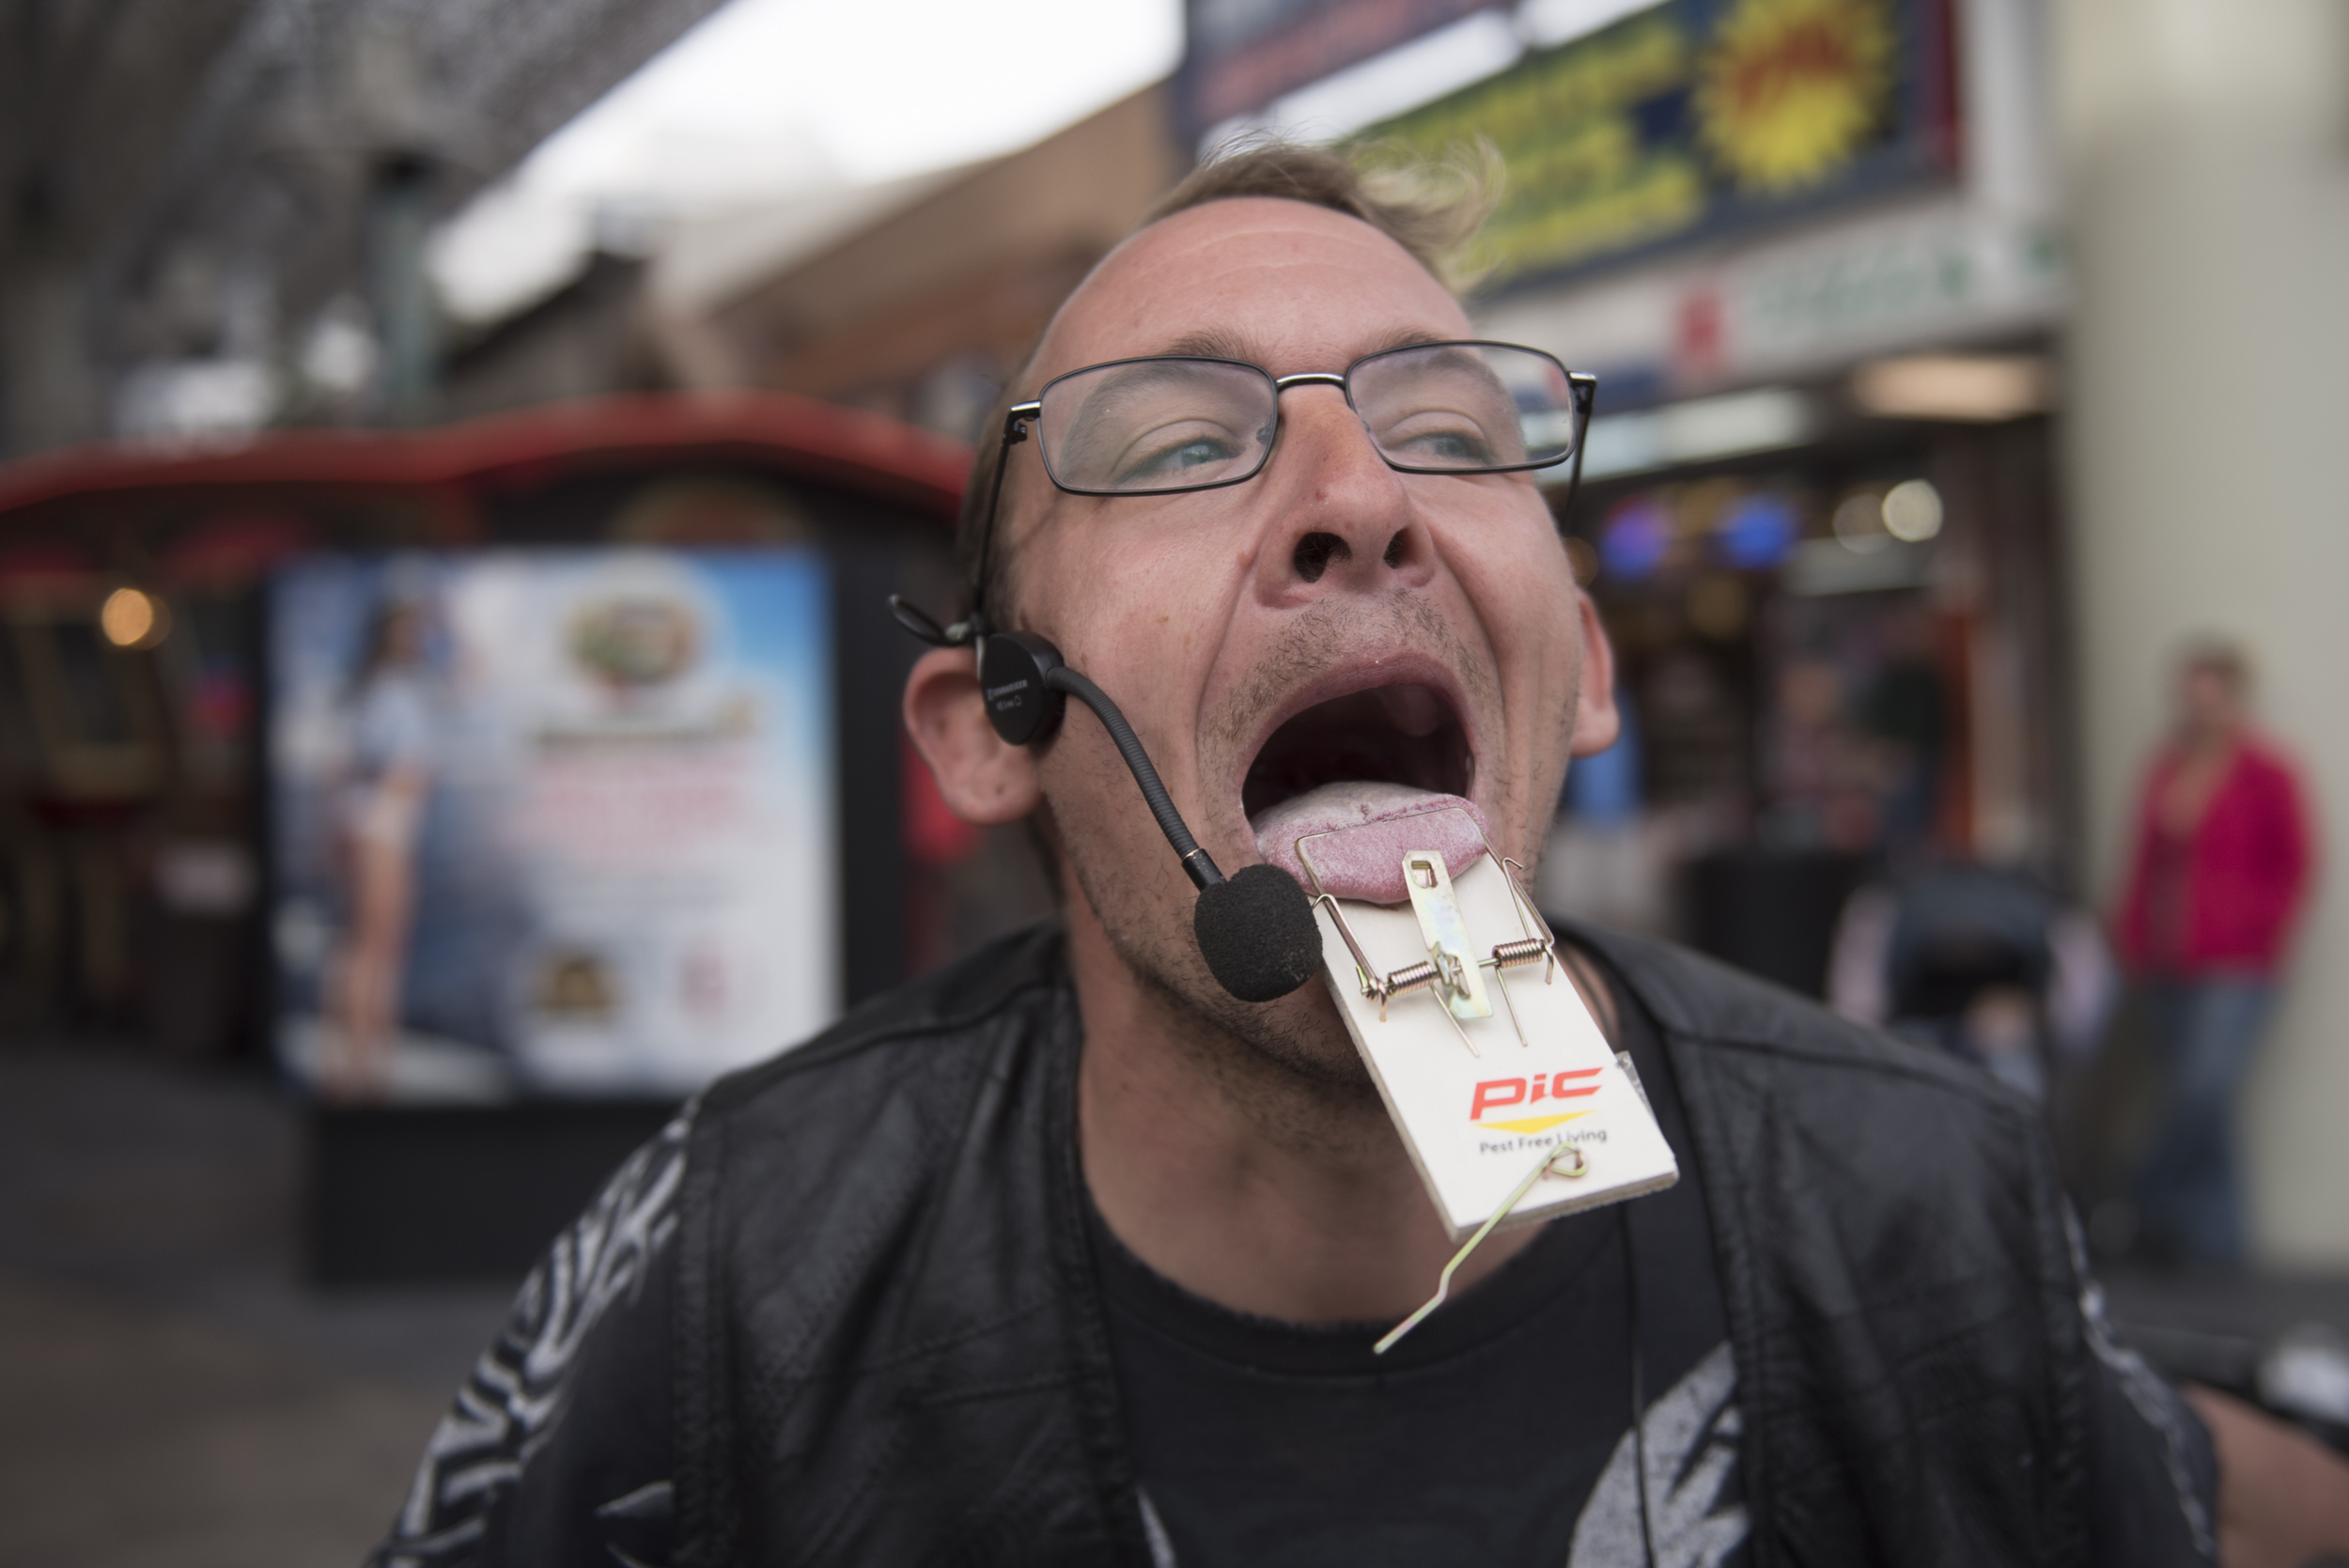 Busker Jesse Case performs by sticking his tongue in a mouse trap at Fremont Street Experience in Las Vegas Thursday, Jan. 21, 2016. Jason Ogulnik/Las Vegas Review-Journal